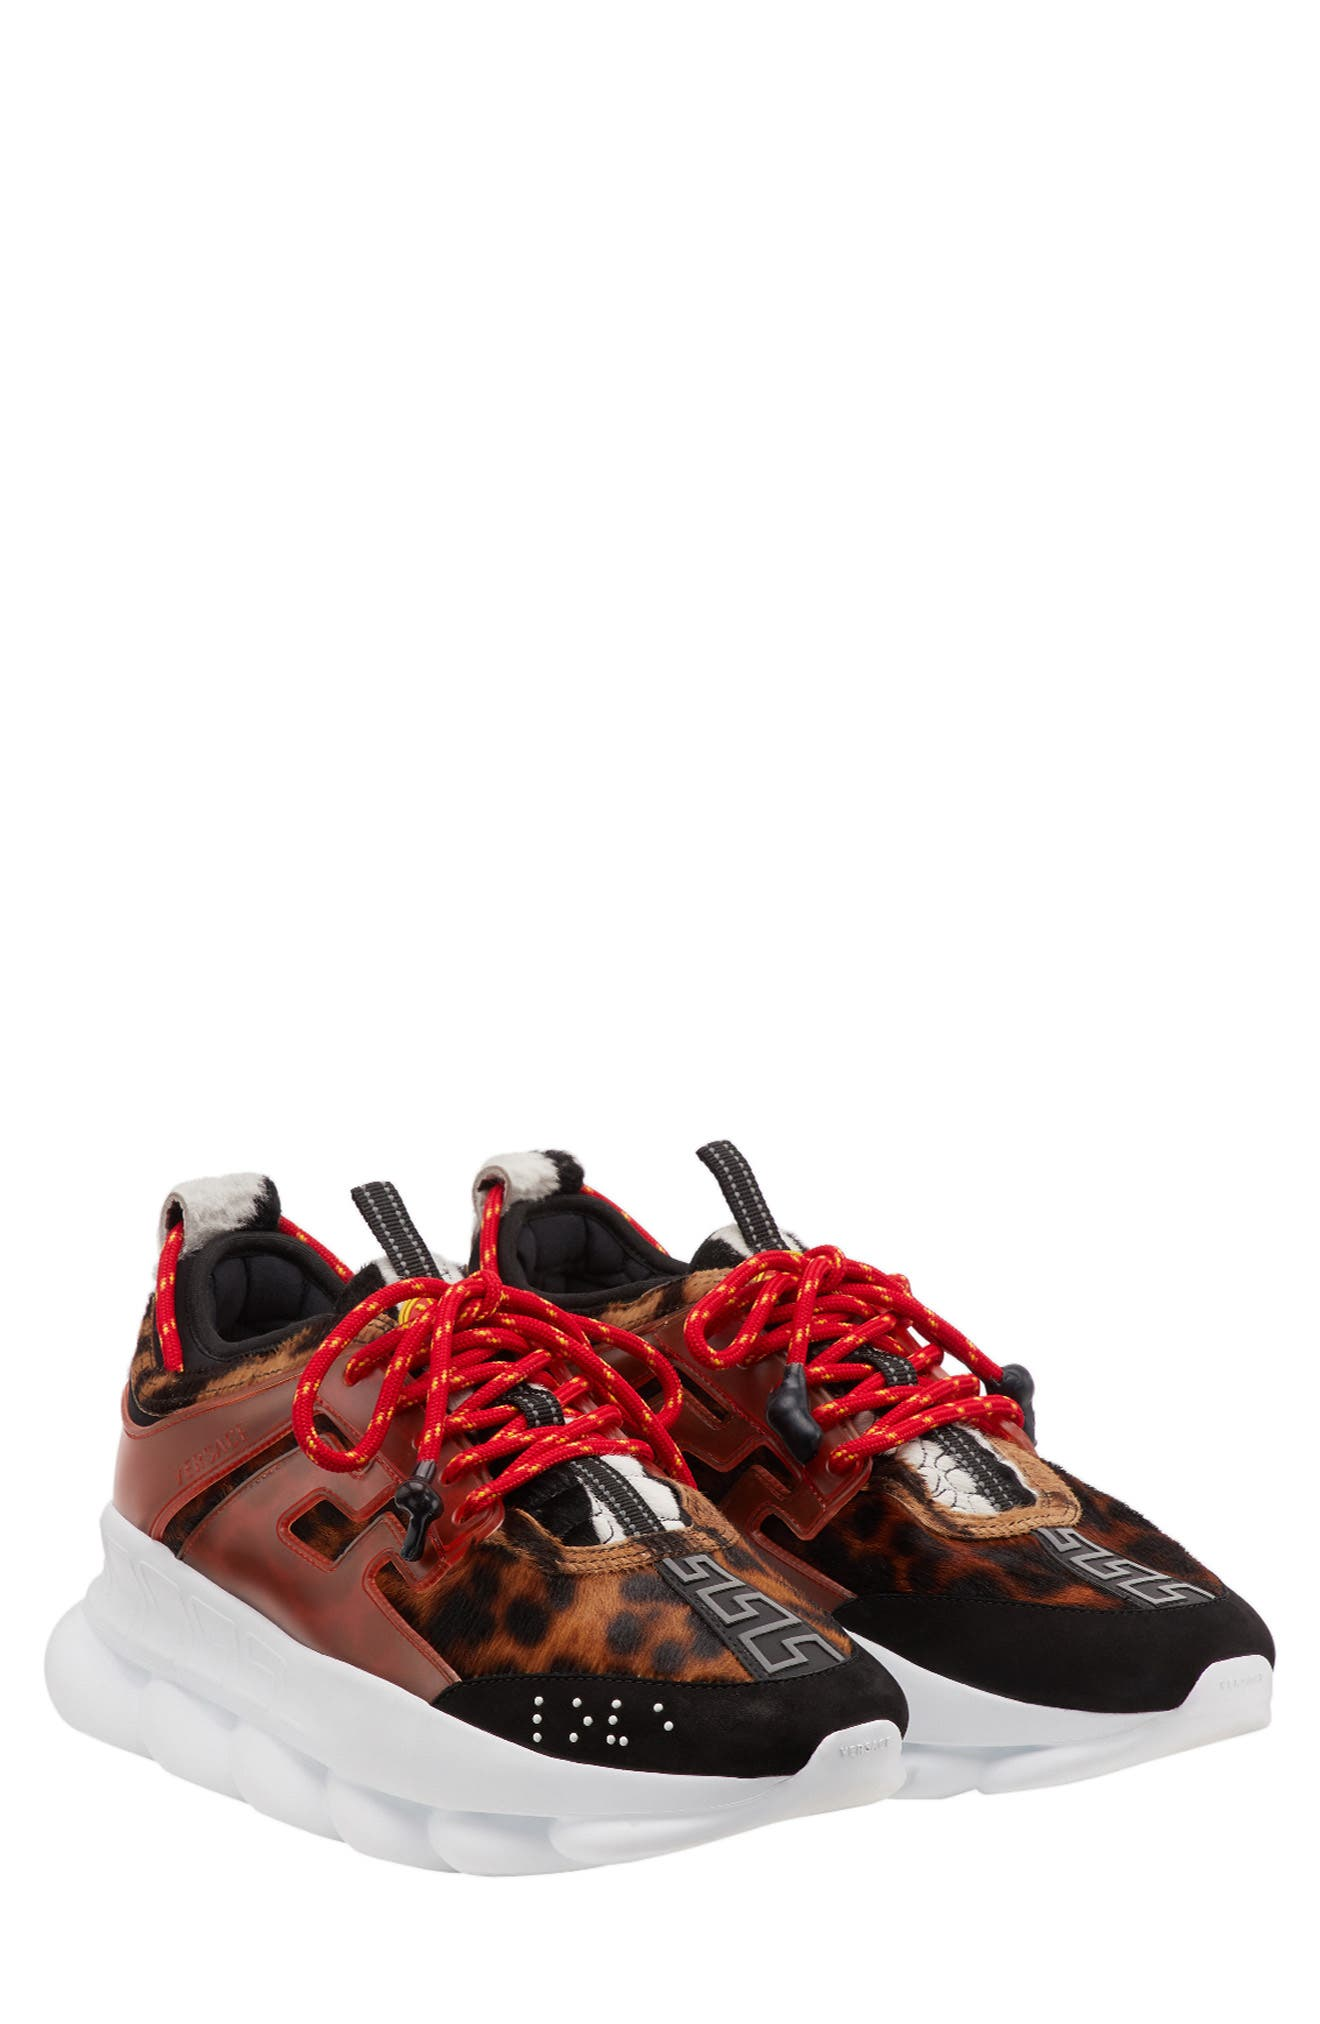 Chain Reaction Sneaker,                             Main thumbnail 1, color,                             205